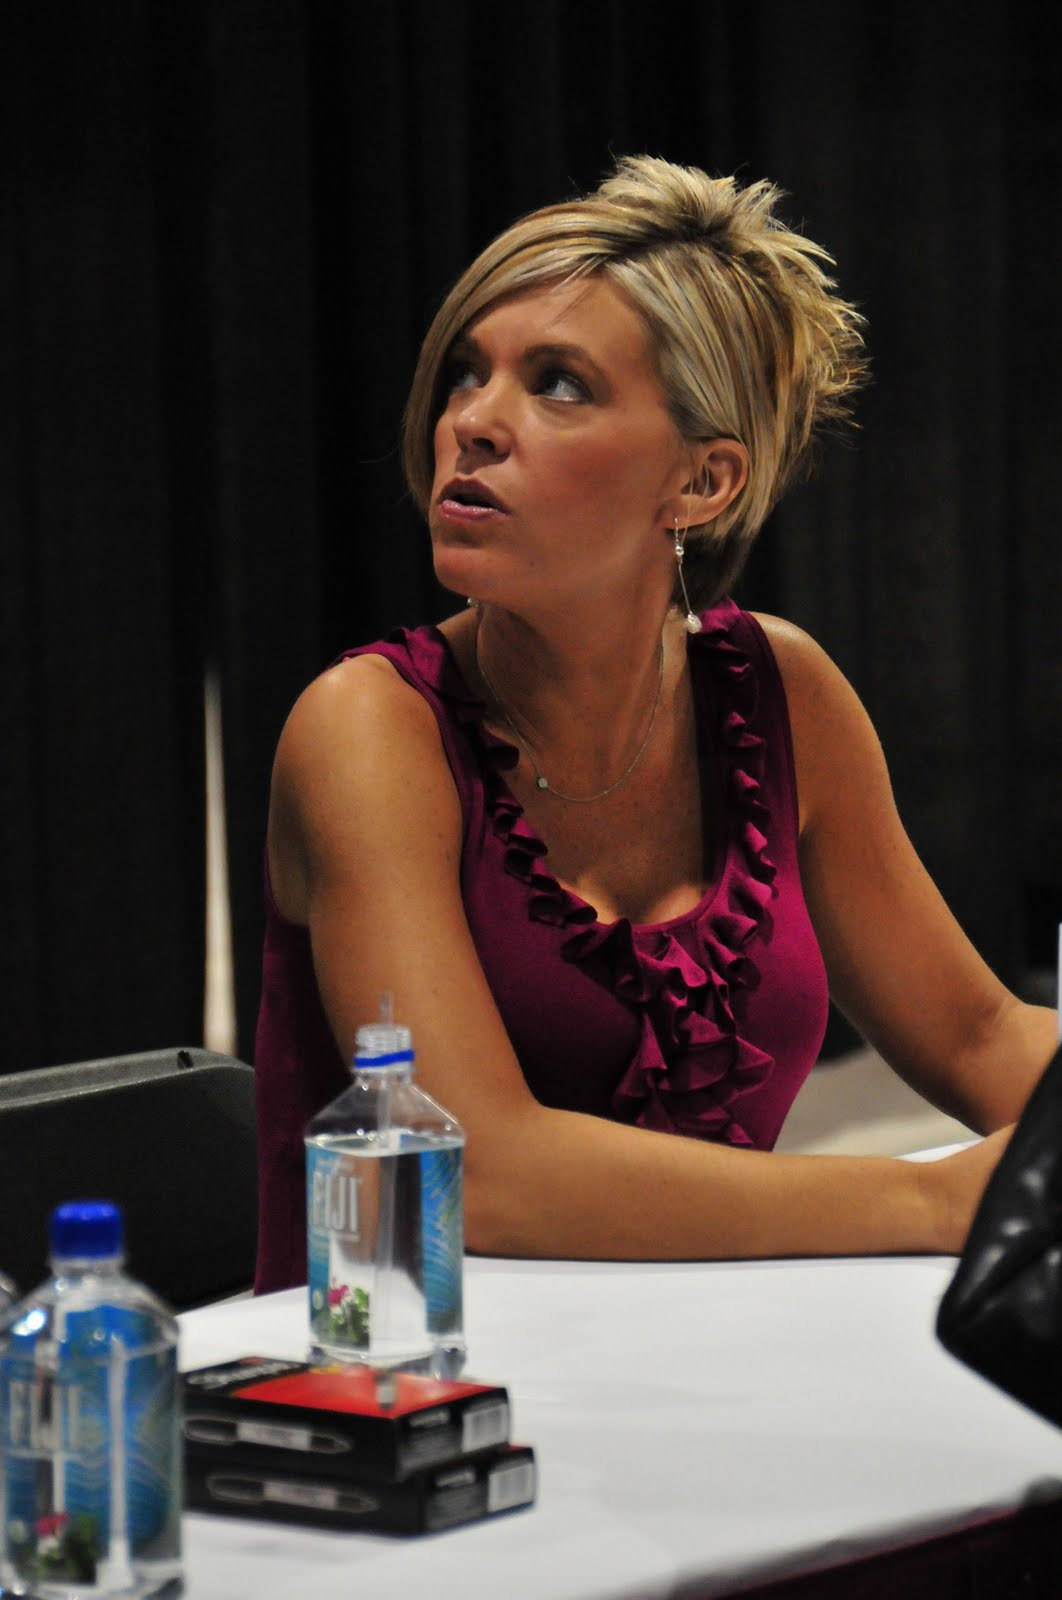 Kapocino Hairstyle Kate Gosselin In Bob Hairstyle For Busy Mom S